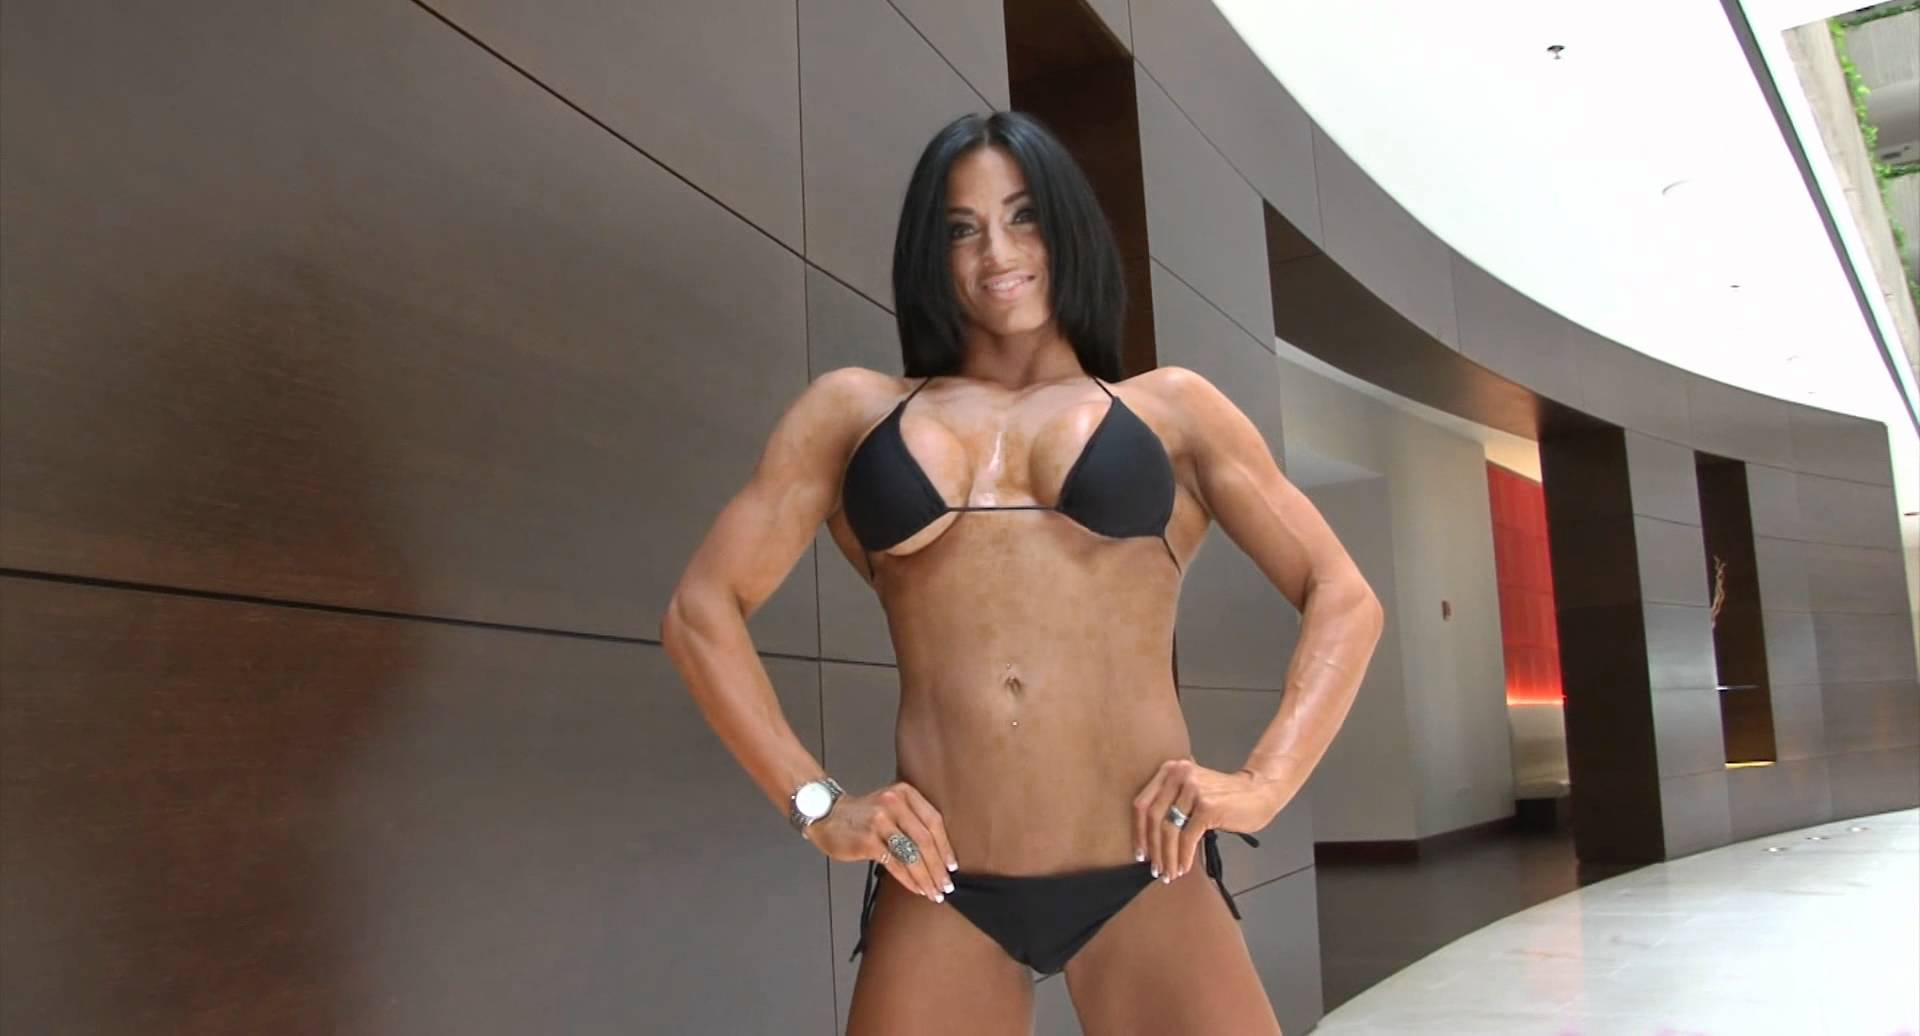 Nataliya Kuznetsova – Biggest Russian Female Bodybuilder